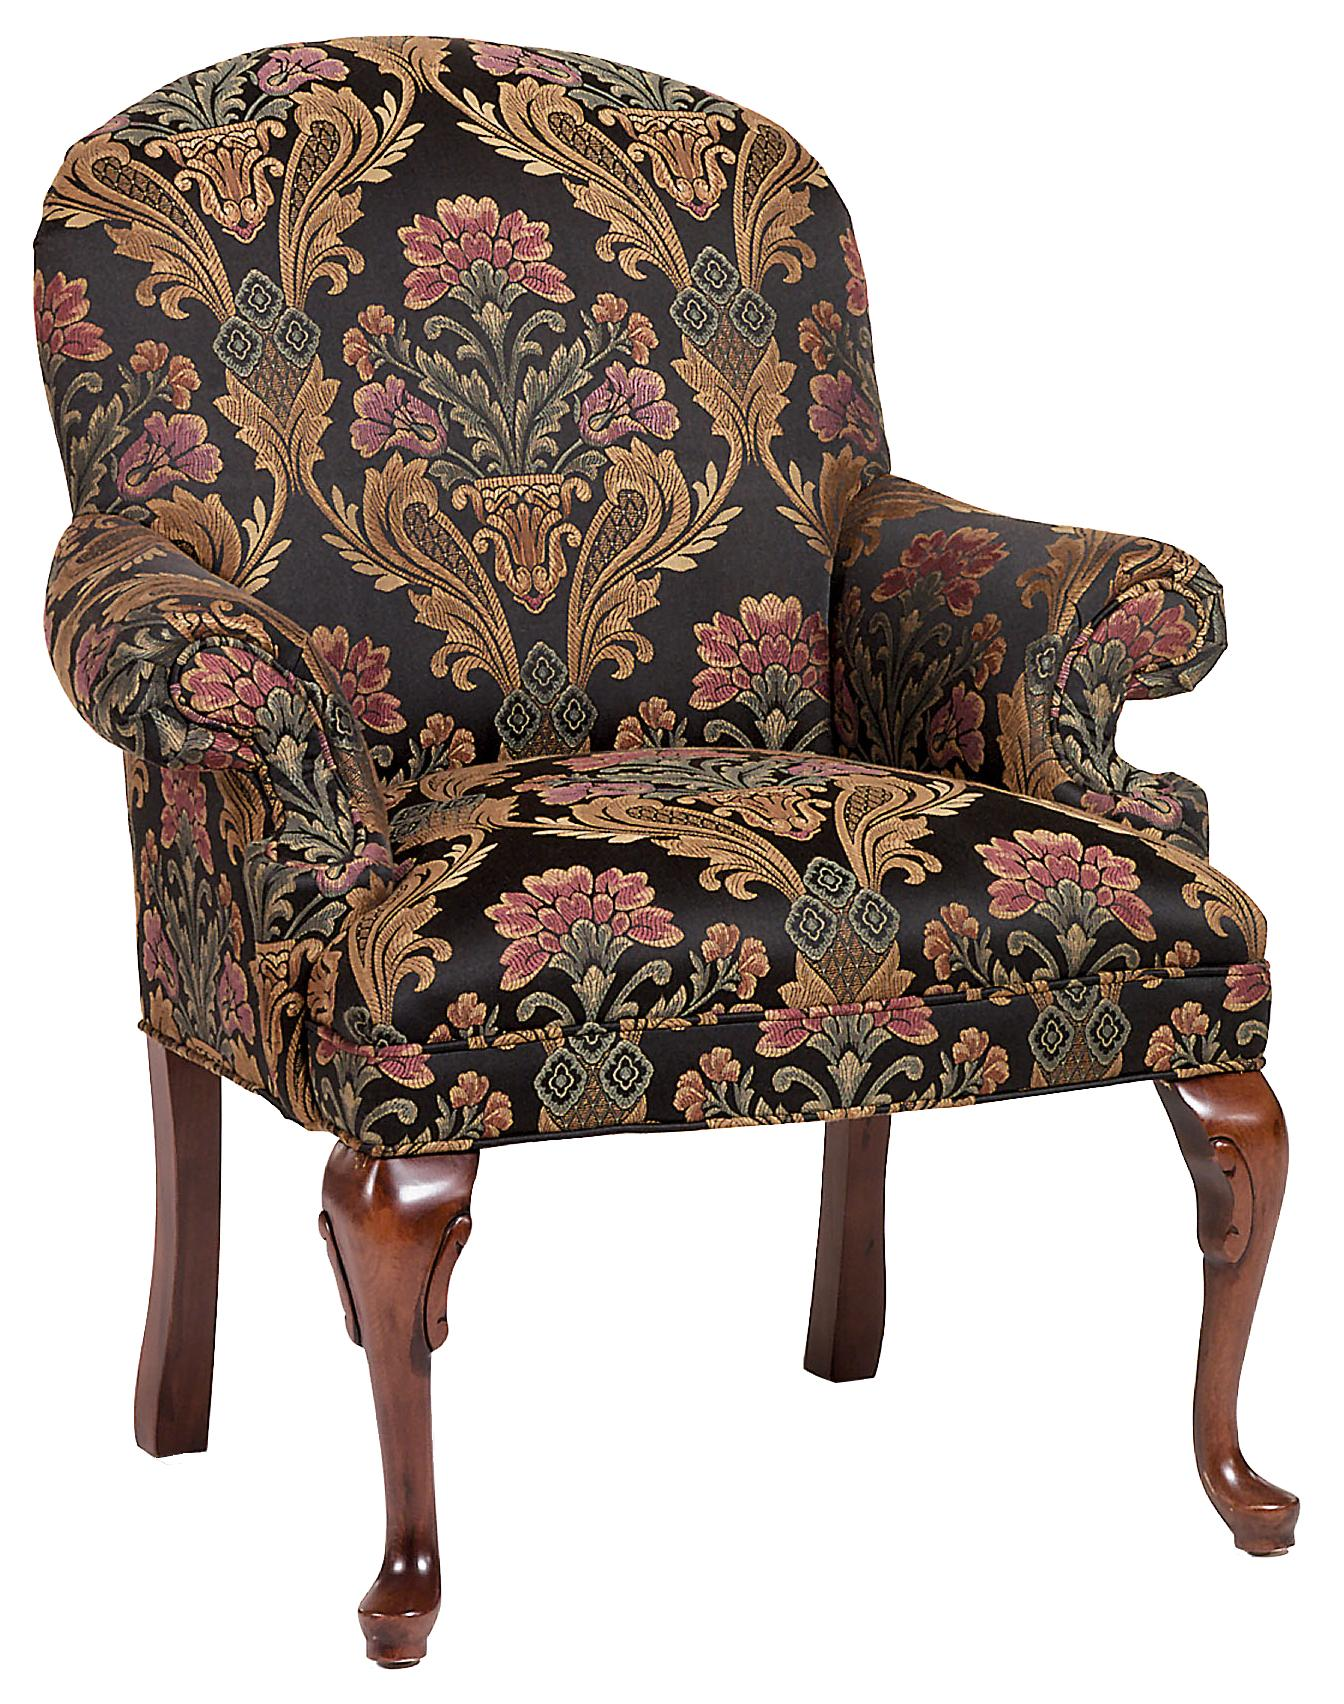 Fairfield Chairs Plush Upholstered Chair - Item Number: 5255-01